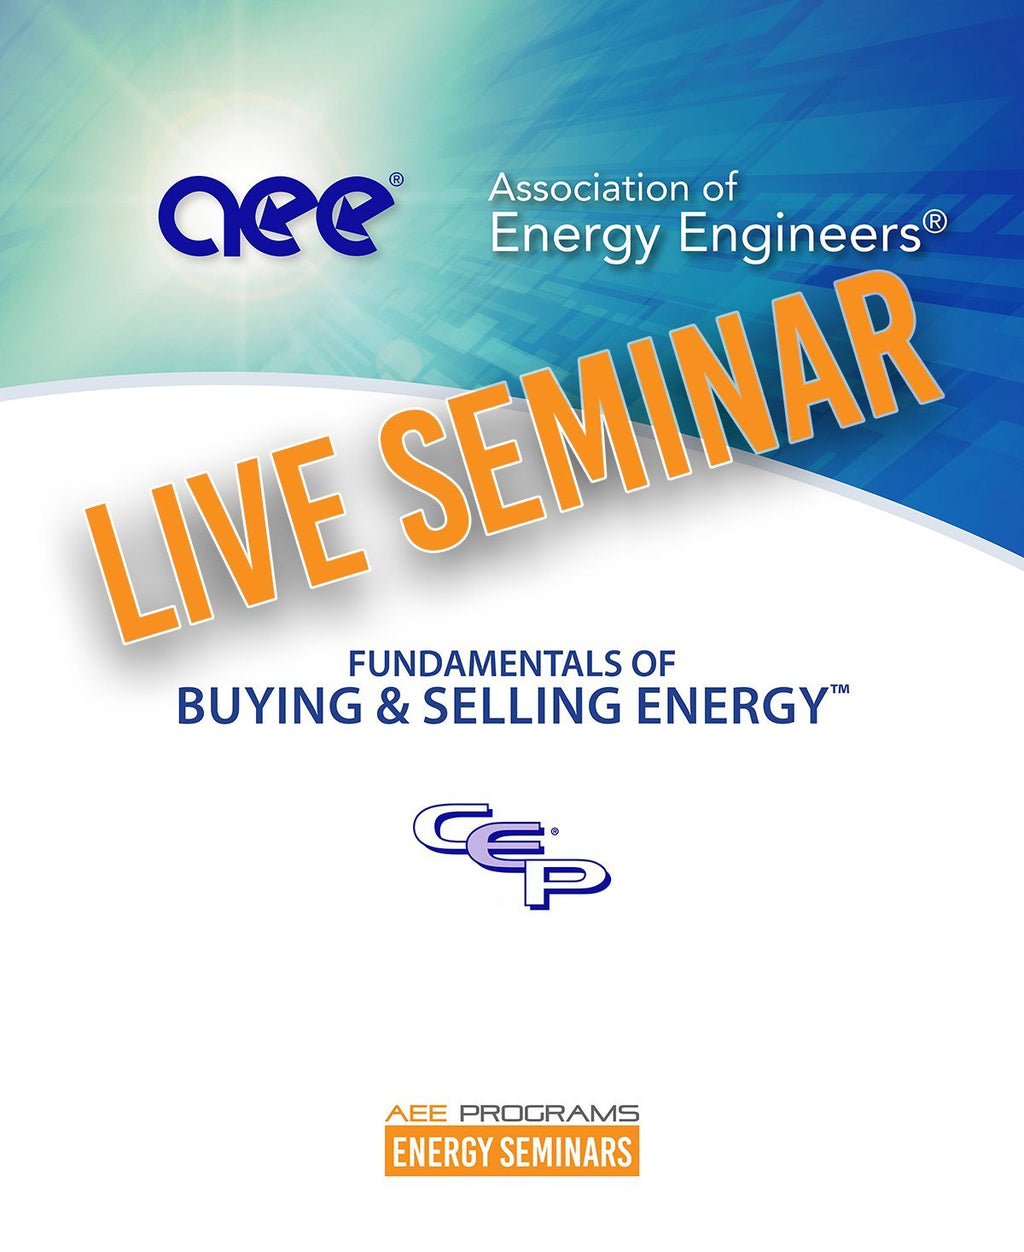 Fundamentals Of Buying And Selling Energy™ - AEE Programs